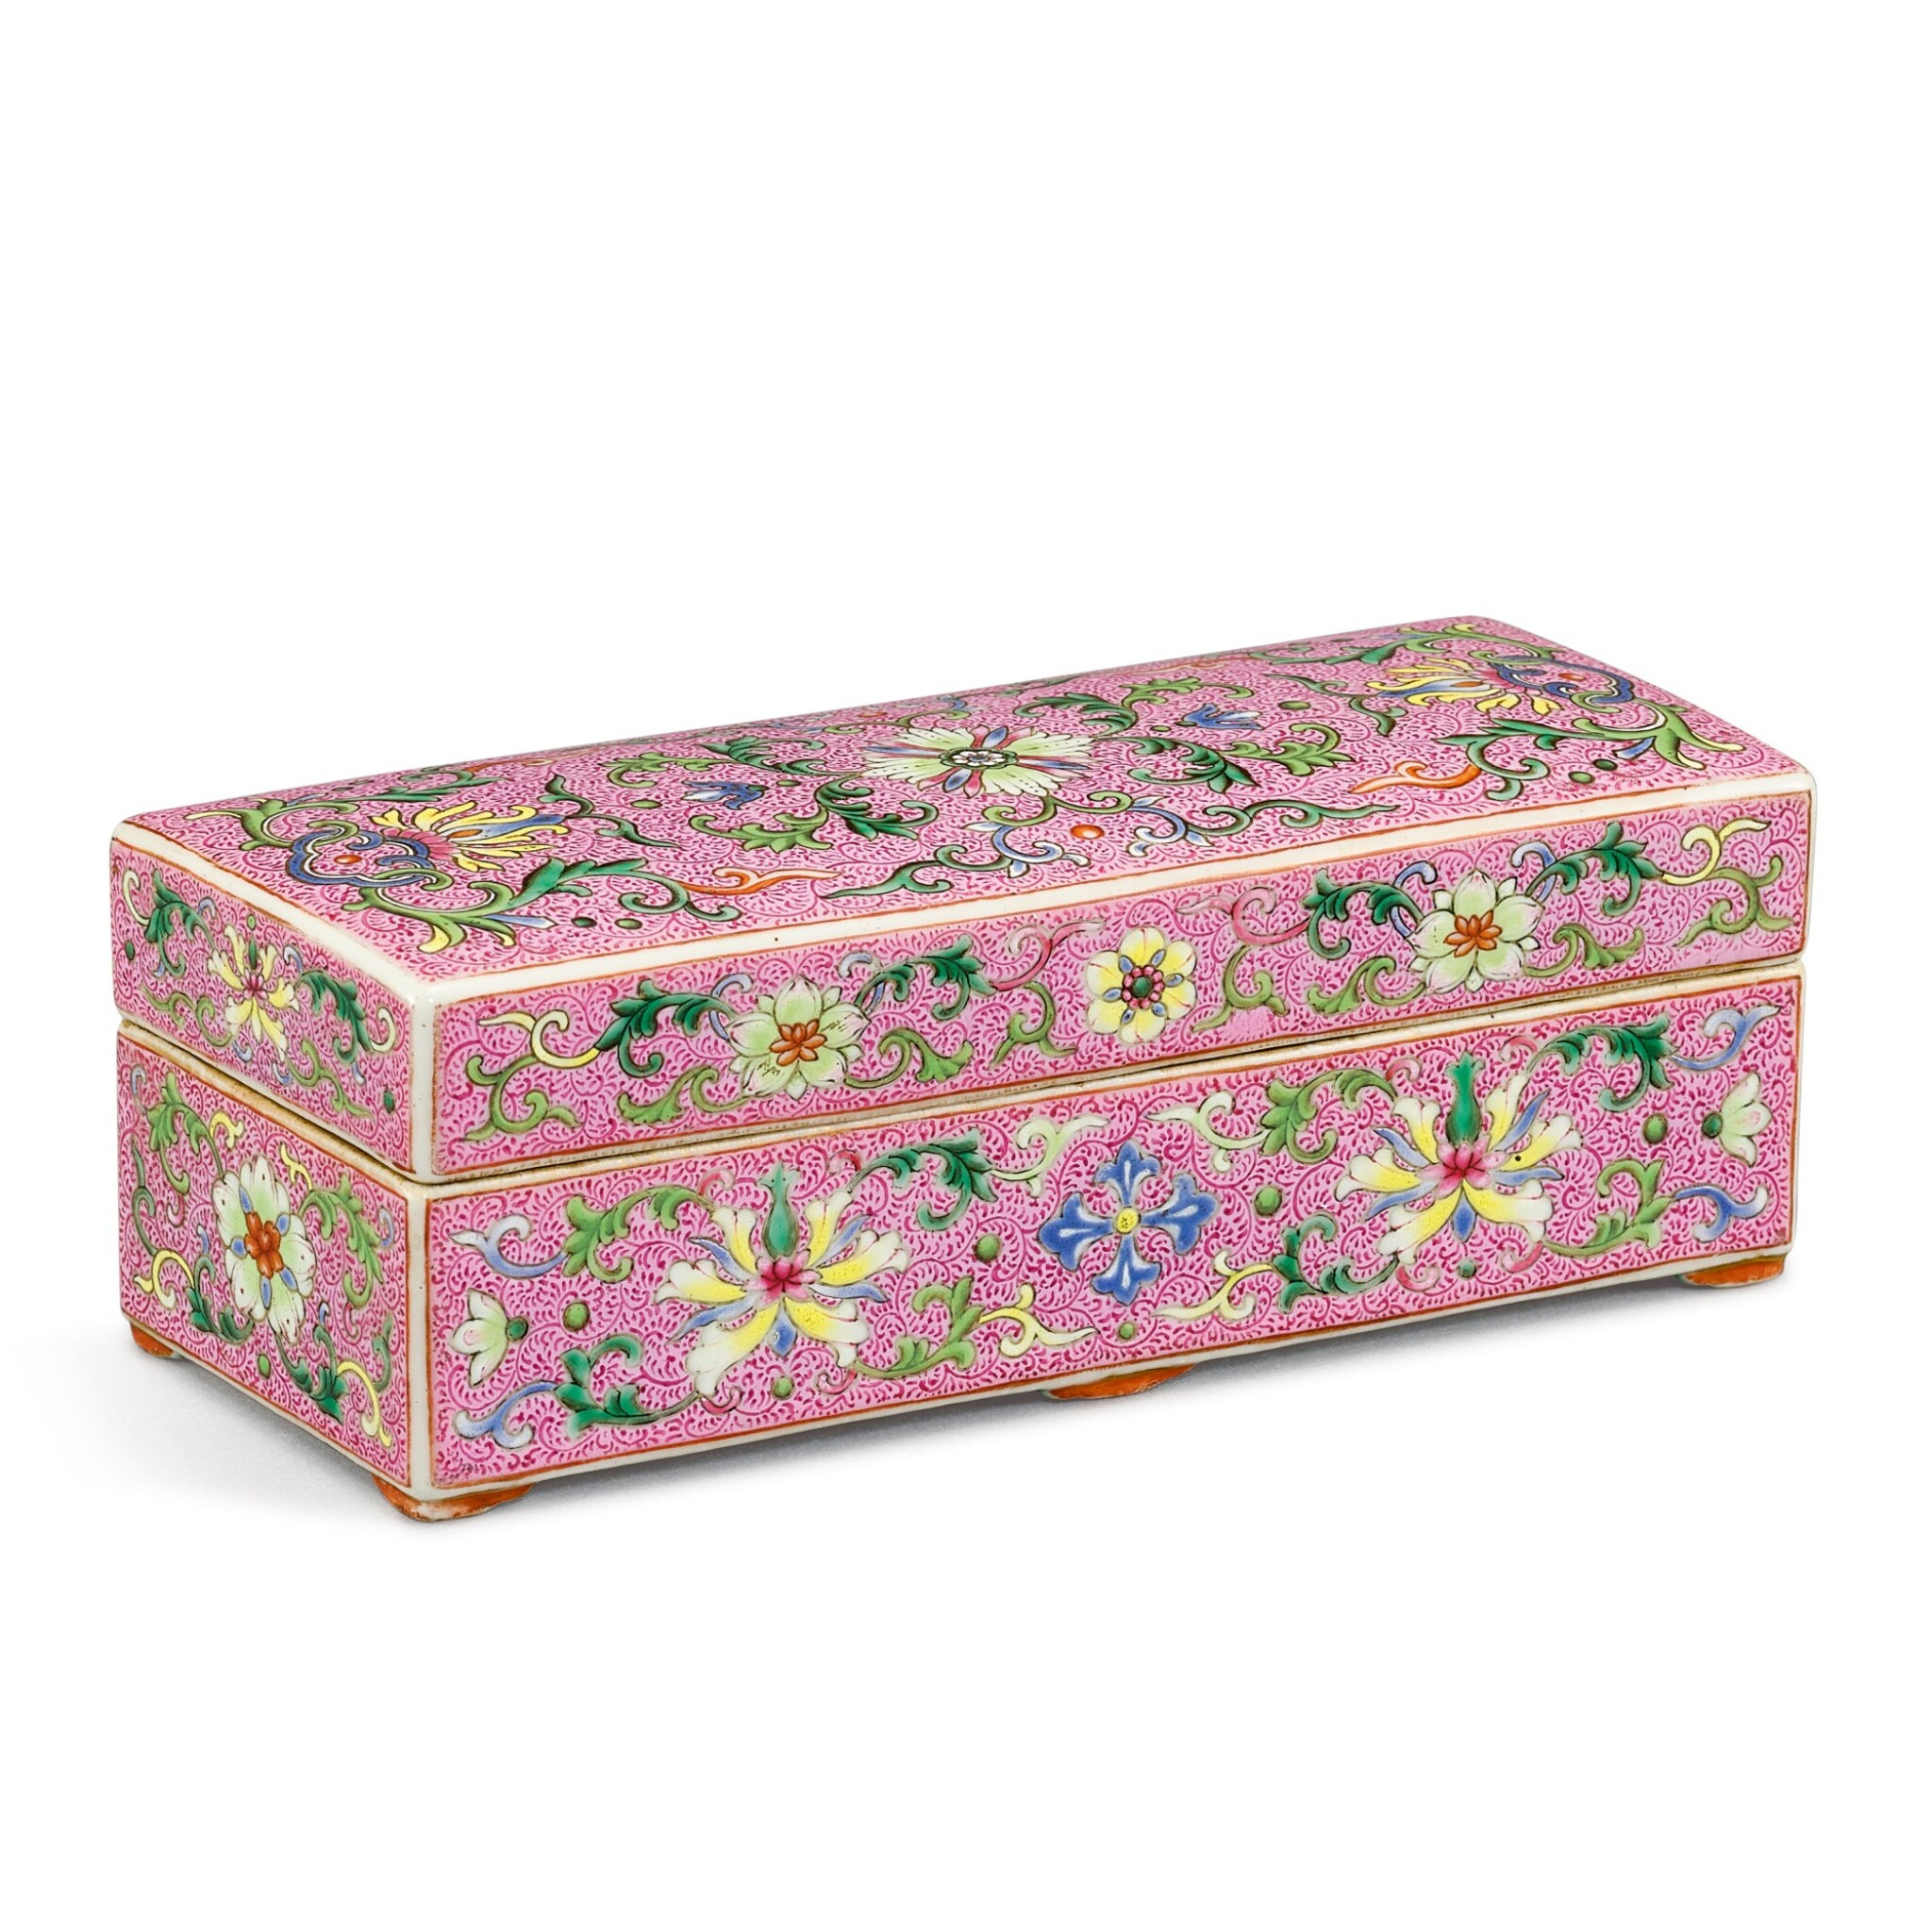 View 1 of Lot 103. A FINELY ENAMELLED PINK-GROUND YANGCAI BOX AND COVER QING DYNASTY, QIANLONG PERIOD | 清乾隆 宮粉地洋彩錦上添花番蓮紋長方蓋盒.